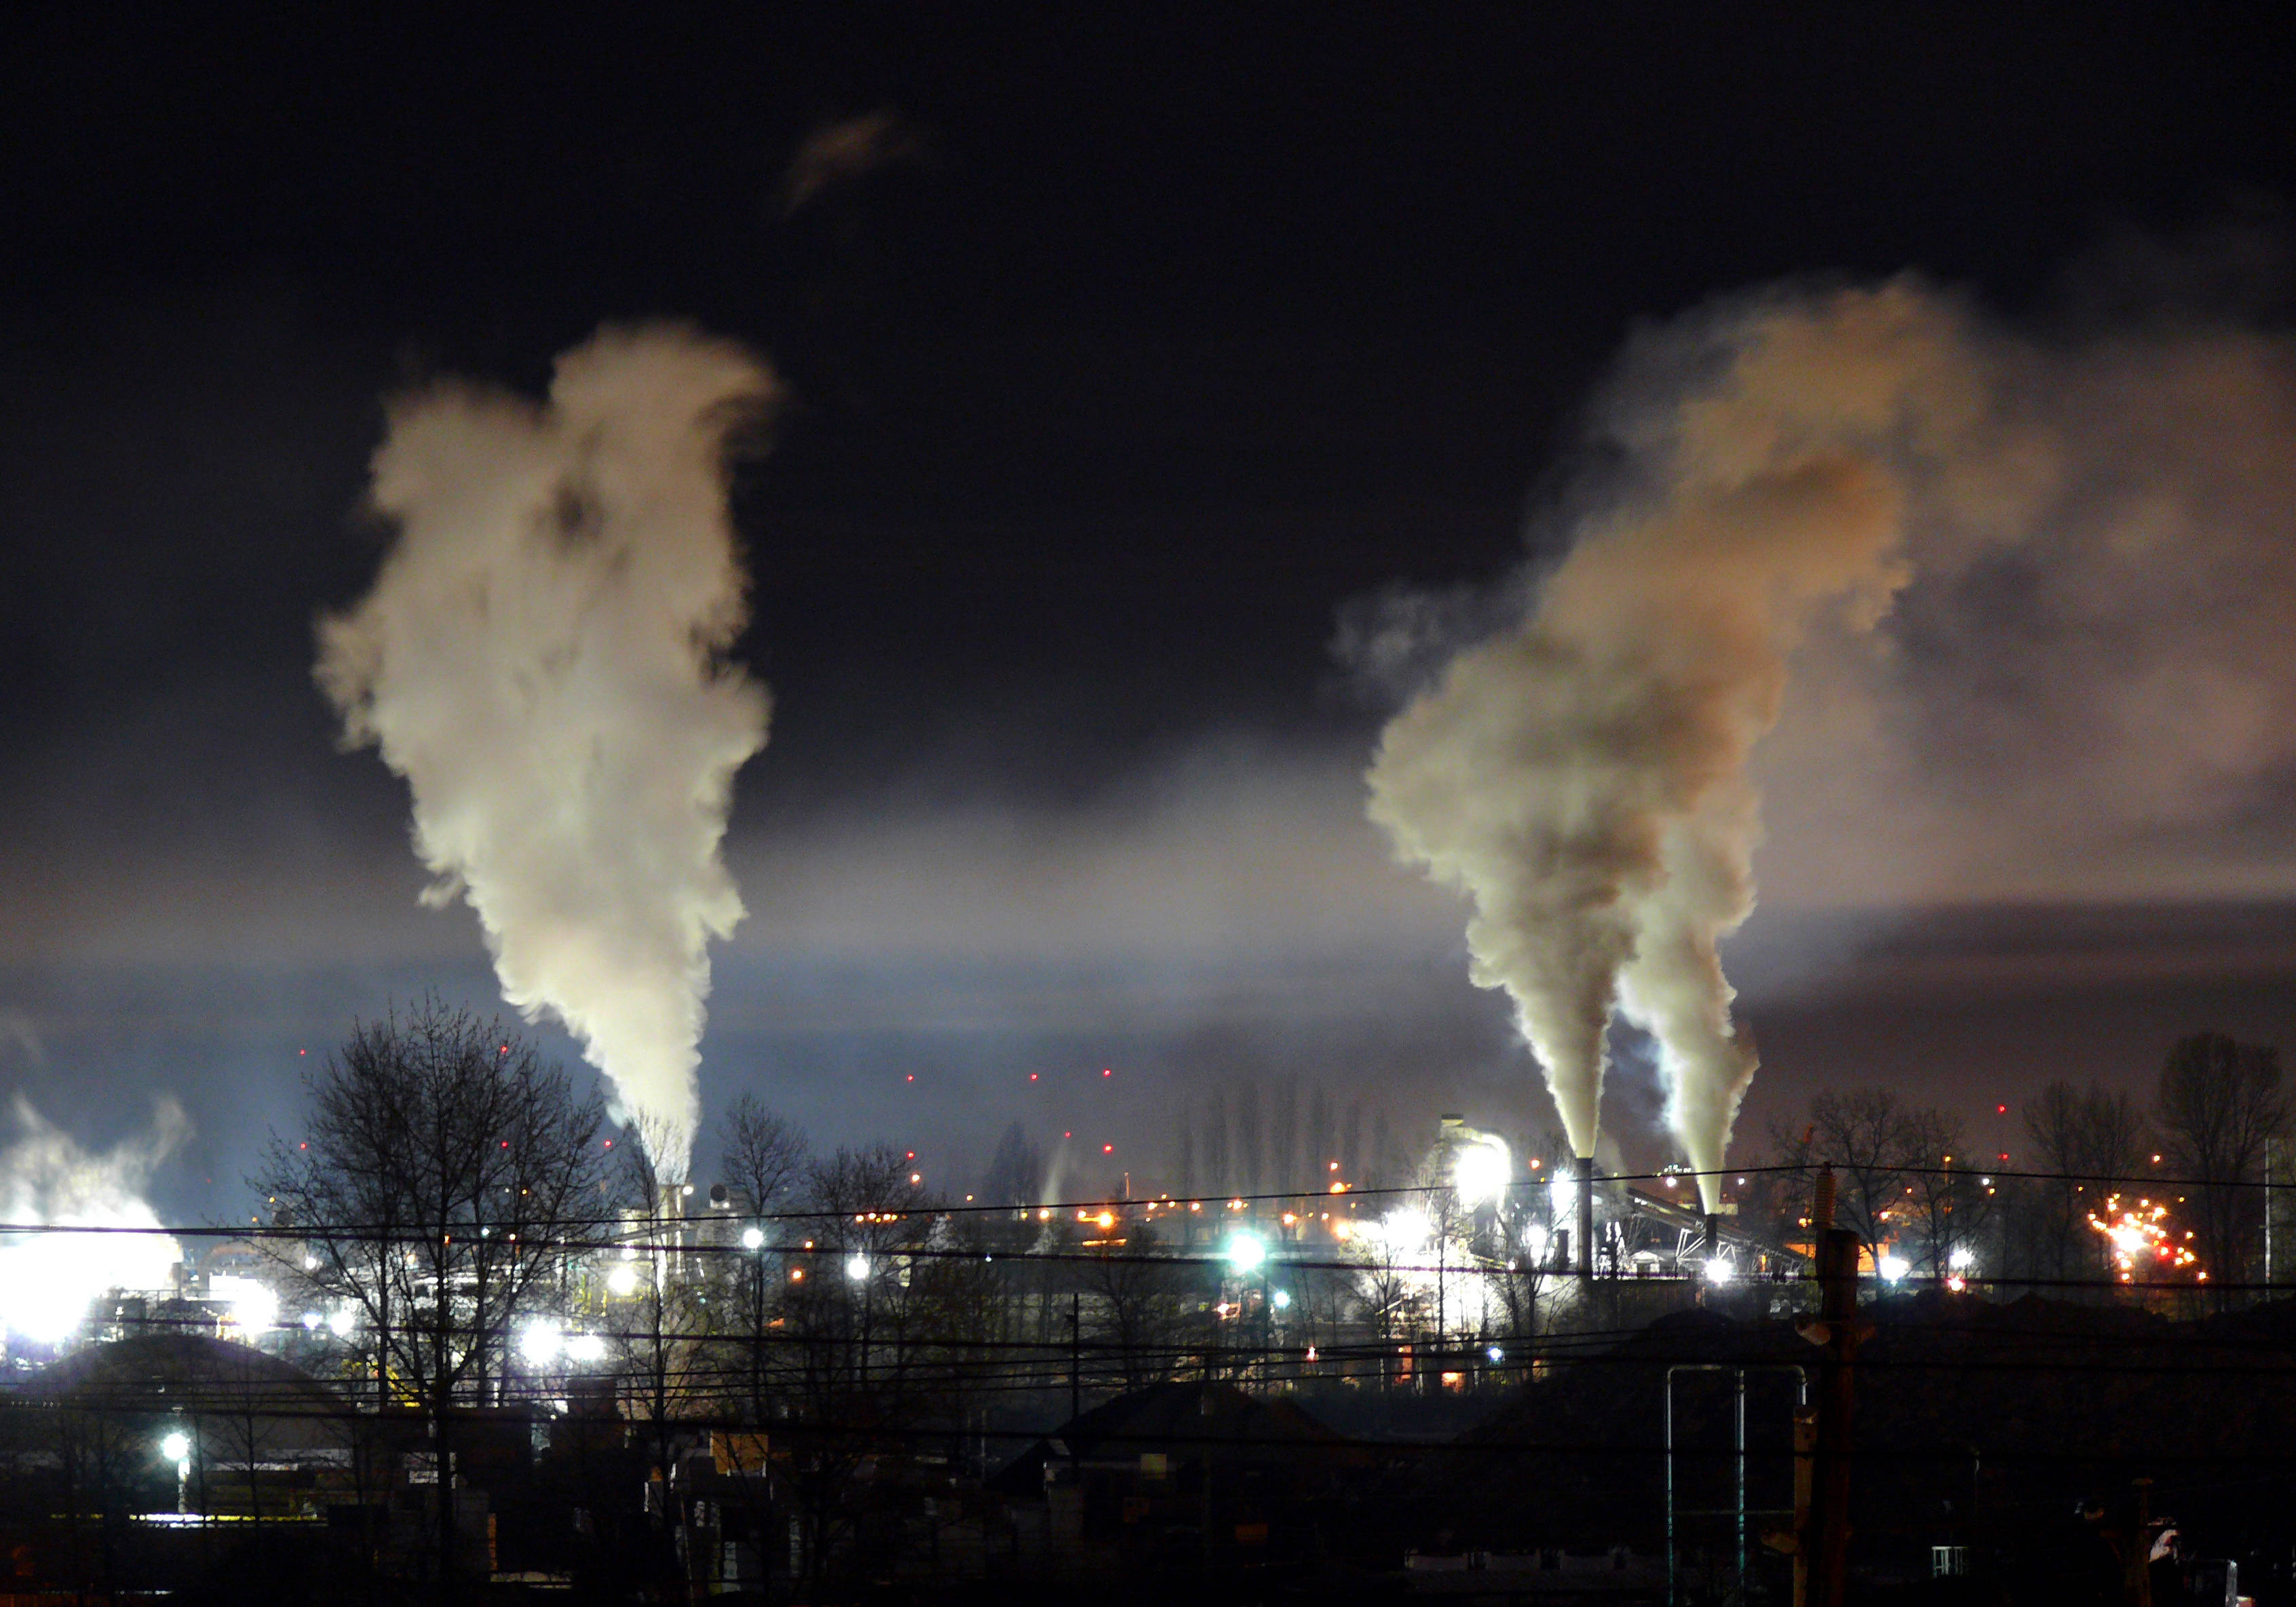 ddf196fb595fd36e5b7b_Heavy_night_industrial_light_pollution.jpg